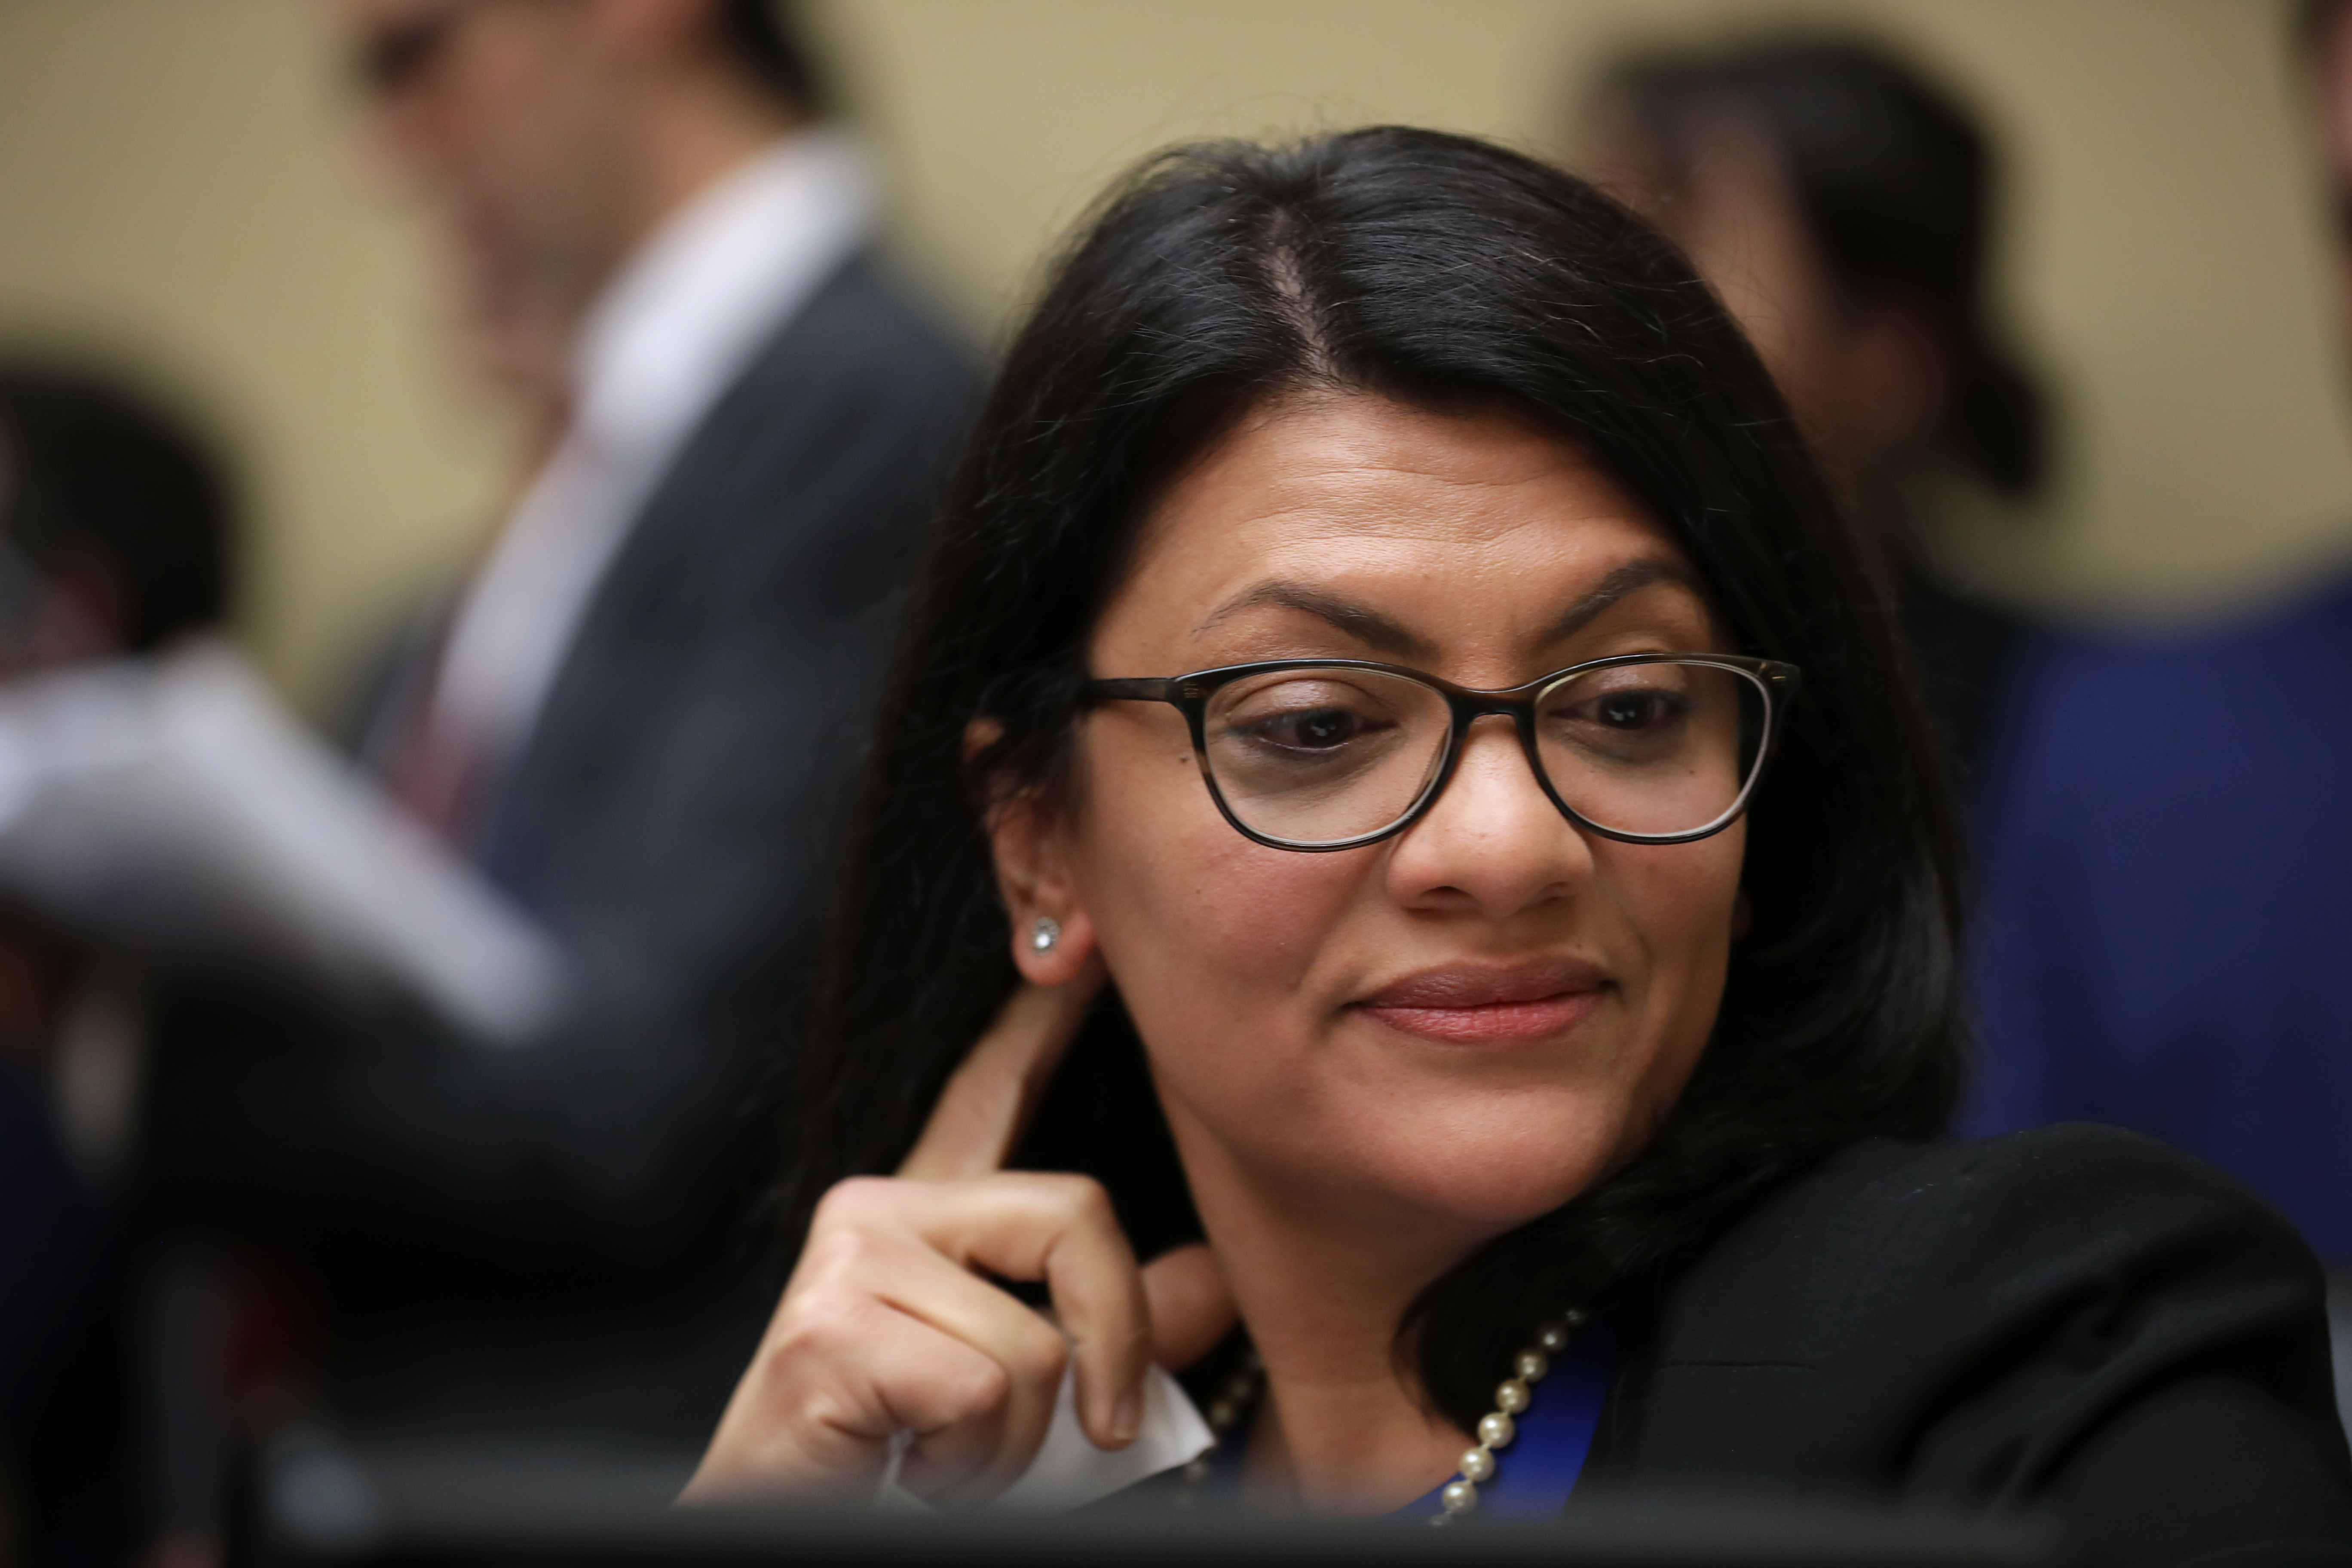 Rep. Rashida Tlaib (D-MI) listens to Michael Cohen testify before the House Oversight Committee. (Chip Somodevilla/Getty Images)